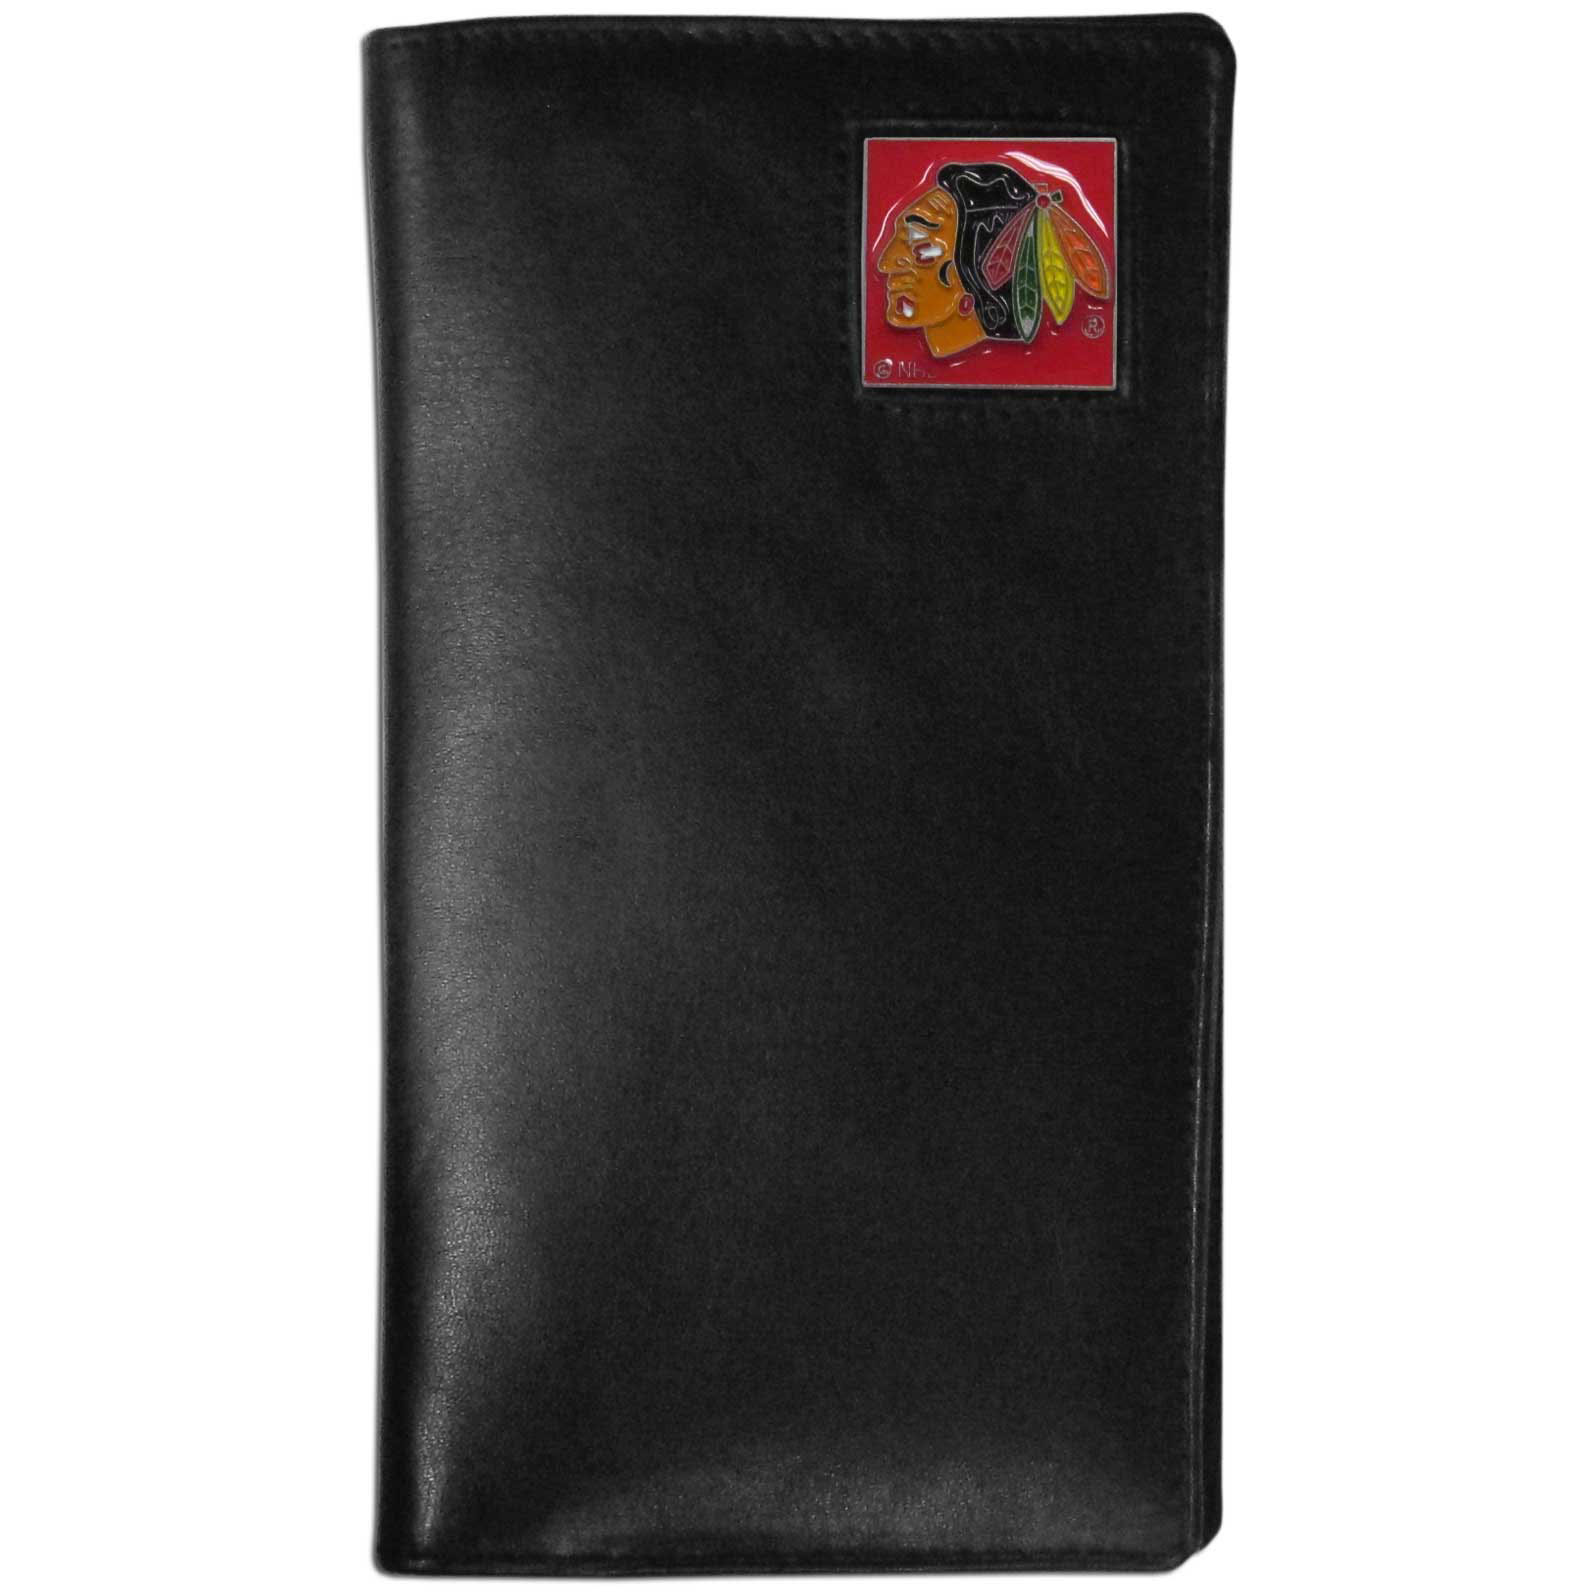 Chicago Blackhawks Tall Leather Wallet - This officially licensed Chicago Blackhawks tall leather wallet cover is made of high quality leather with a fully cast metal Chicago Blackhawks emblem with enameled Chicago Blackhawks color detail. The cover fits both side and top loaded checks and includes a large zippered pocket, windowed ID slot, numerous credit card slots and billfold pocket. Thank you for visiting CrazedOutSports